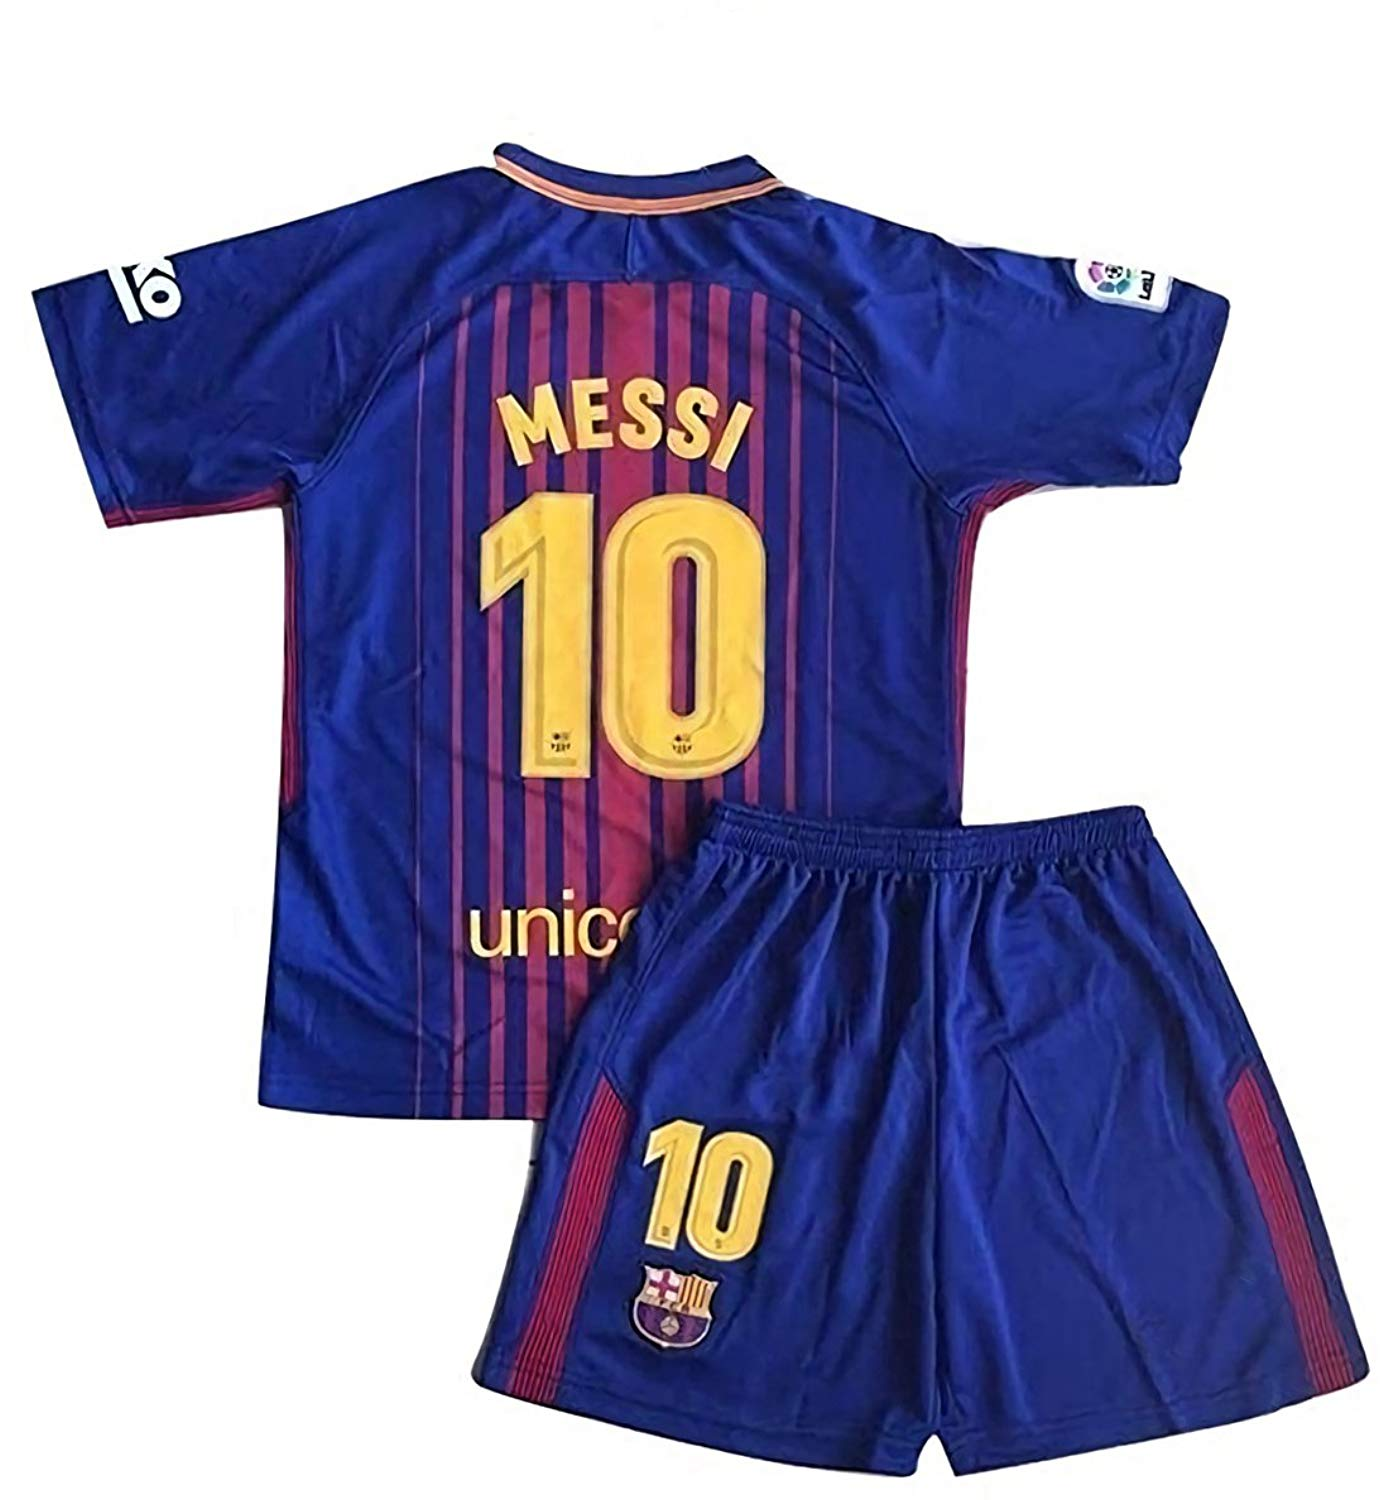 3297e7806ba Get Quotations · MensHotyo 2017 2018 Barcelona Messi 10 Kids Youths Home Soccer  Jersey Shorts